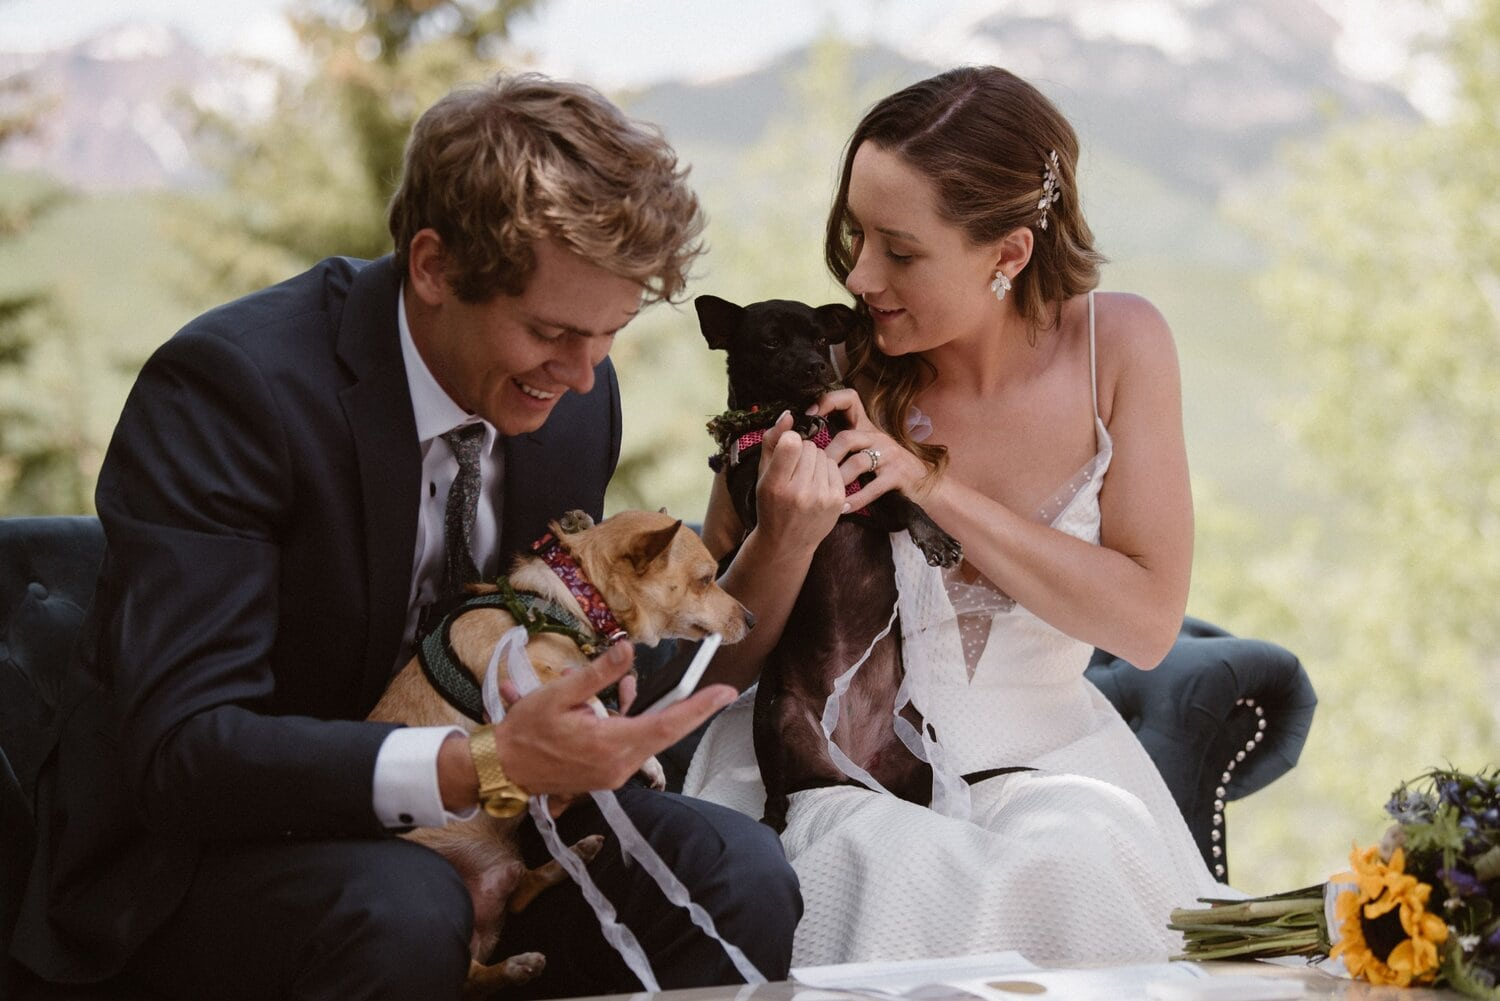 Bride and groom each hold a dog in their lap on their wedding day.